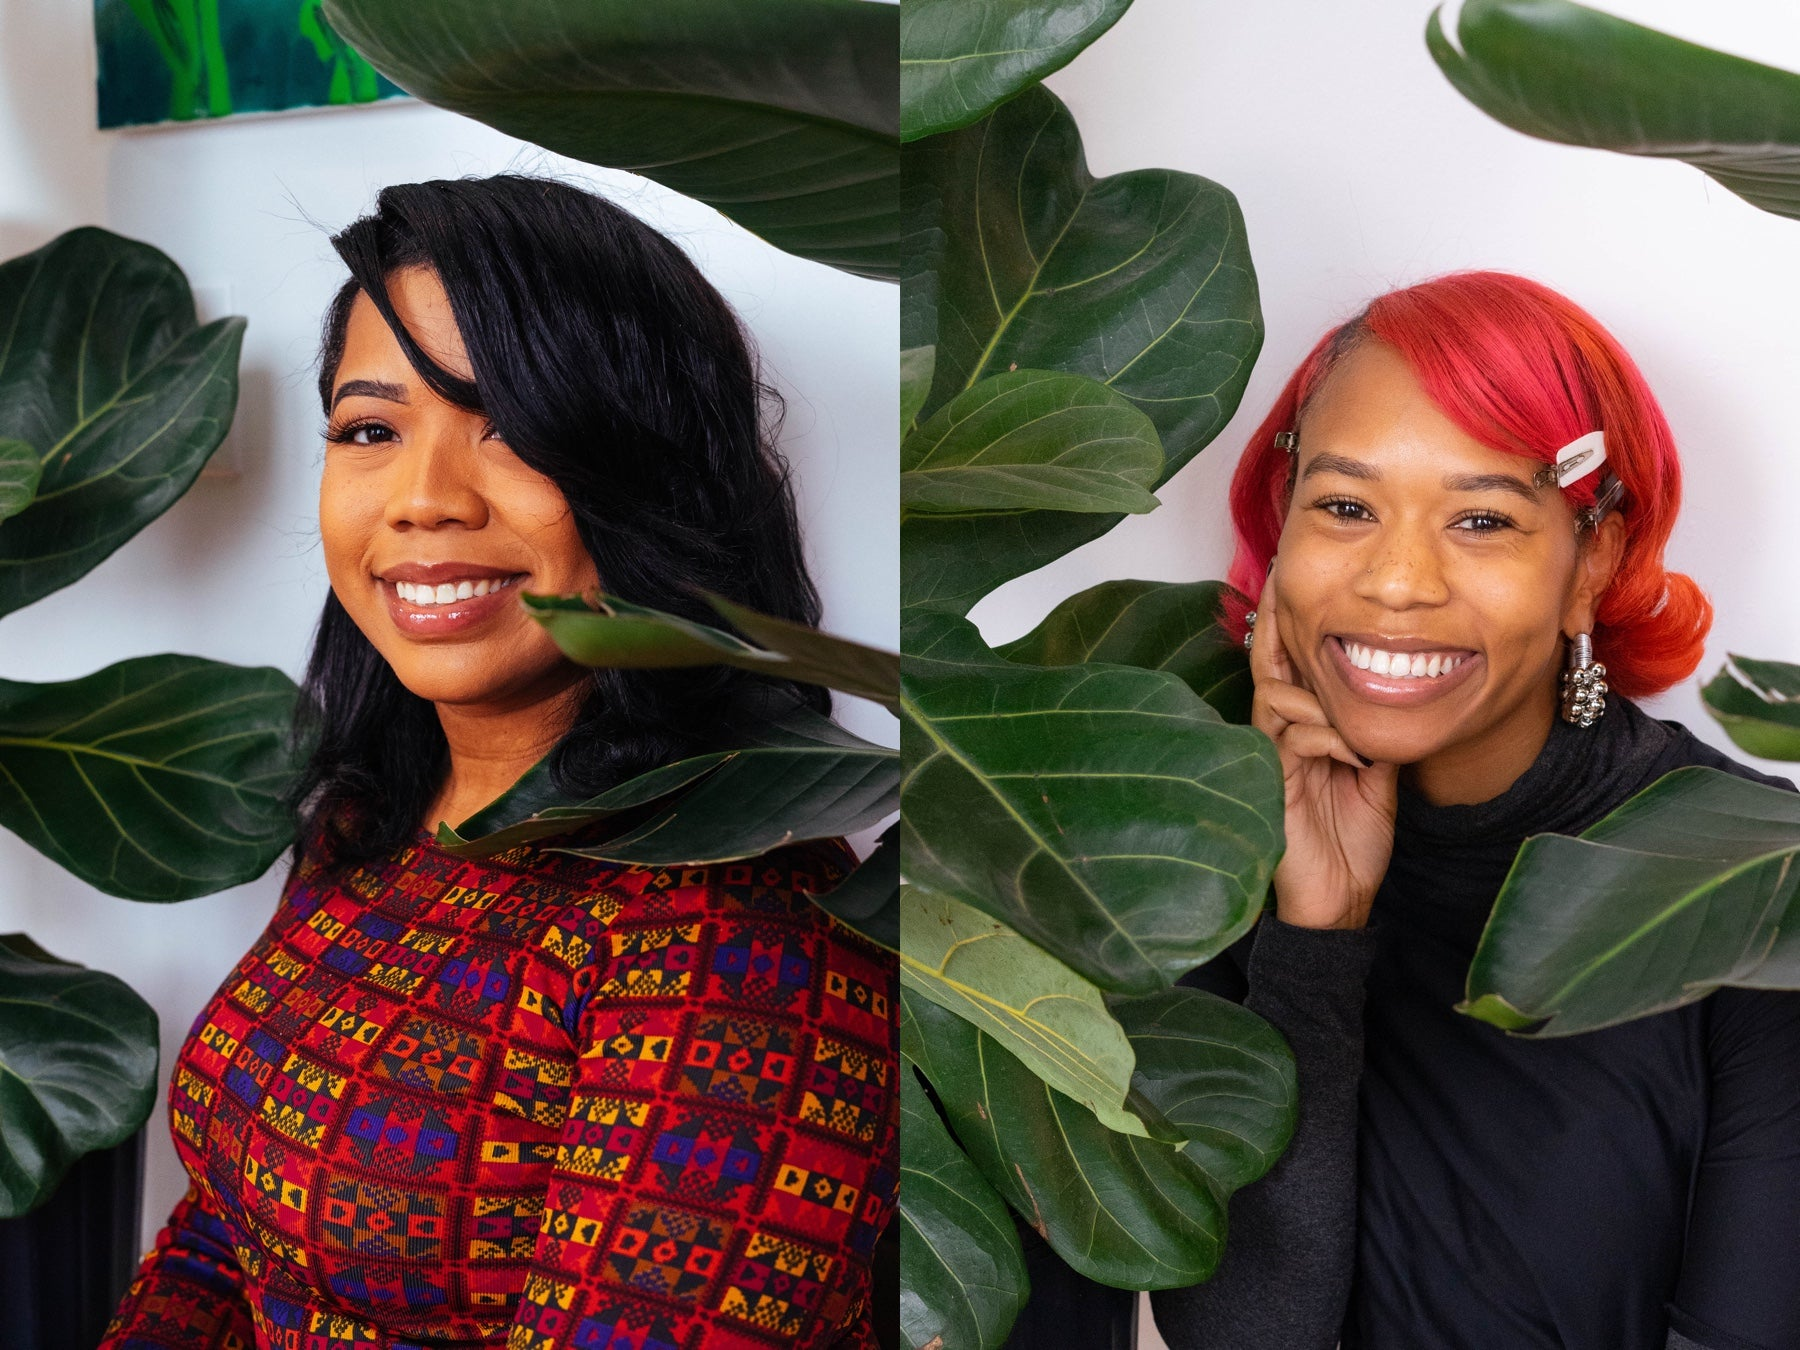 Side by side portraits of the founders of Grounded plants